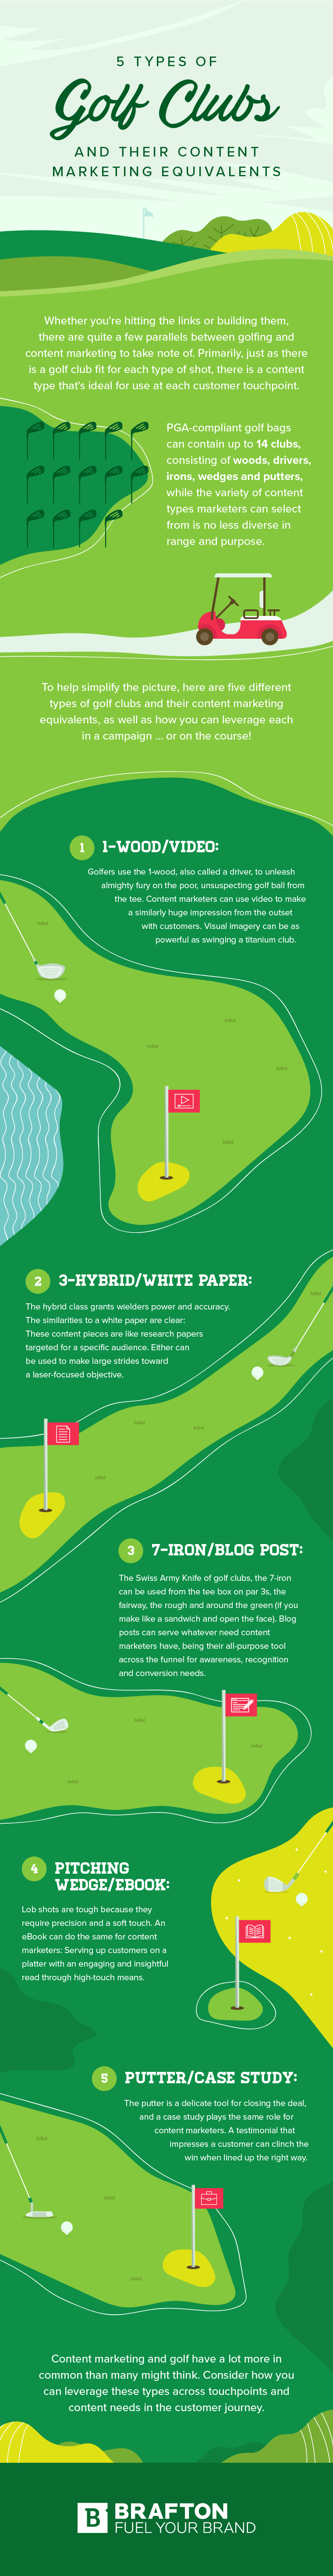 Brafton Golf Clubs Infographic-01.png